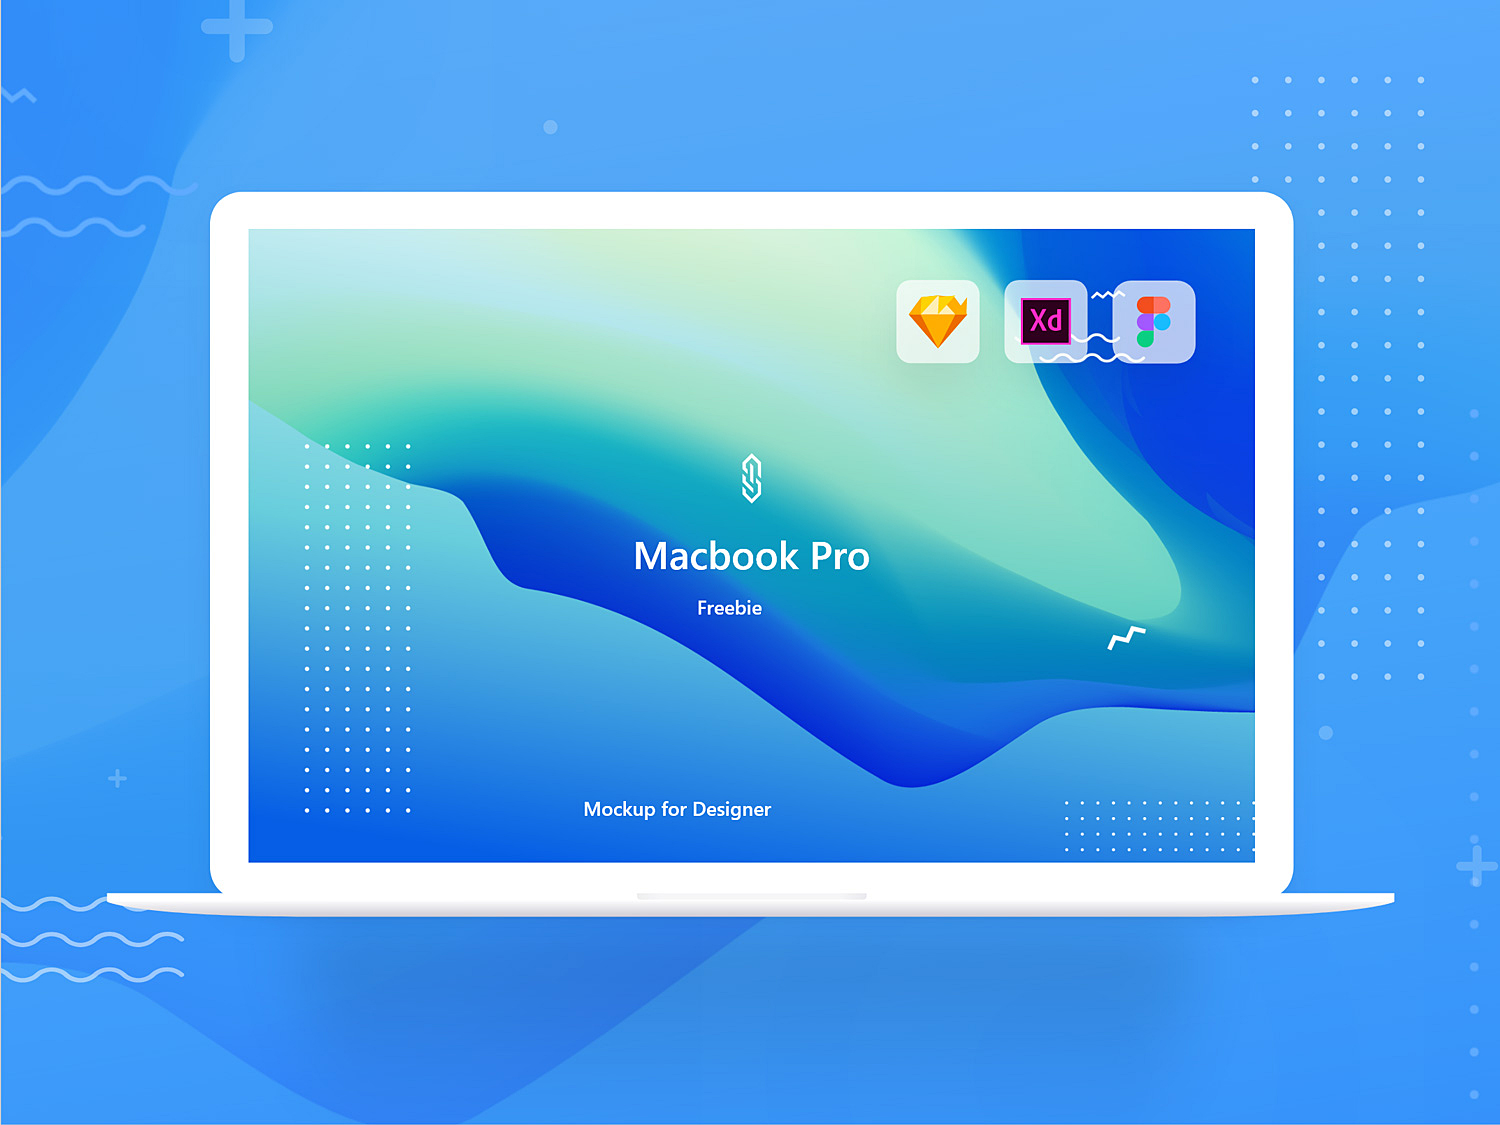 MacBook Pro Mockup Freebie. XD Sketch and Figma 03